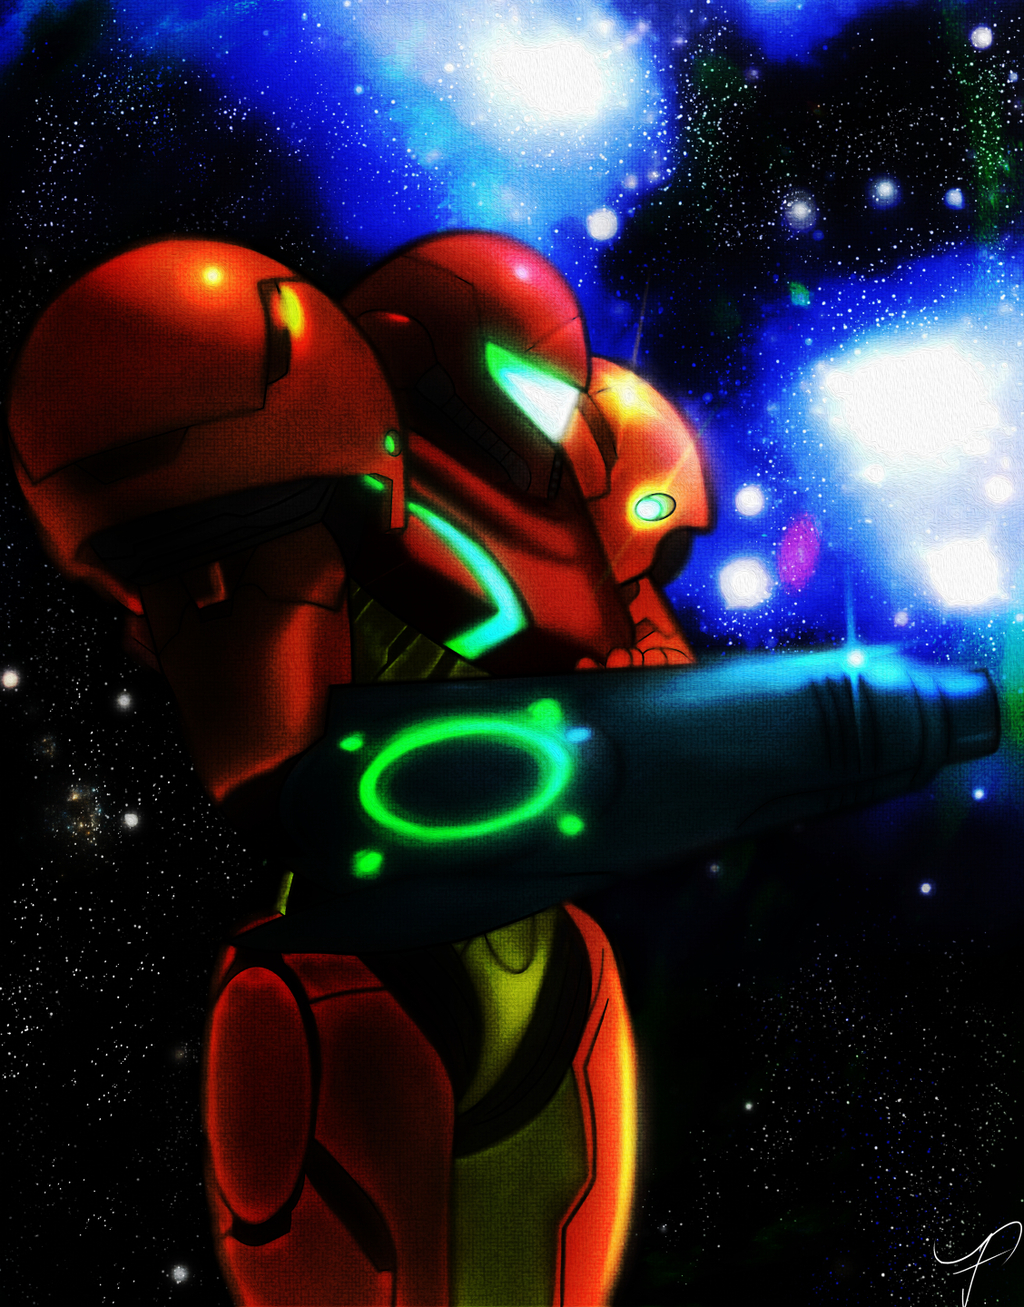 Return of Samus